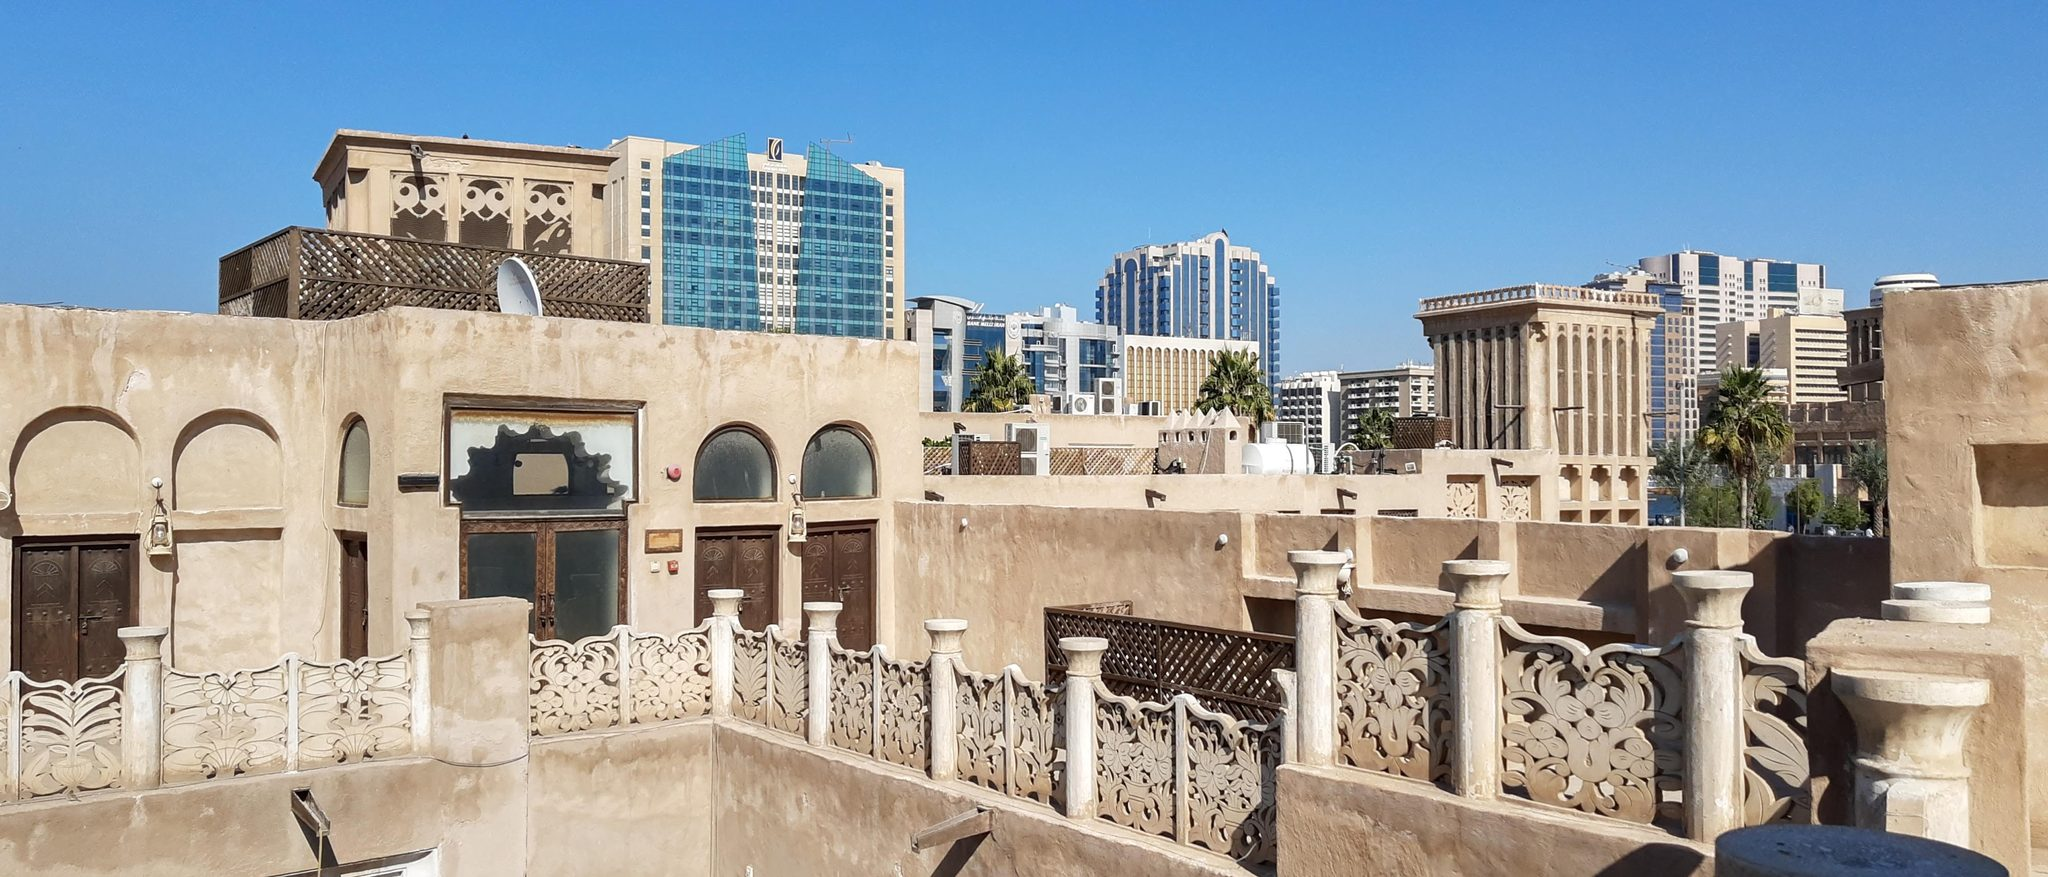 Al Fahidi Historical District 20